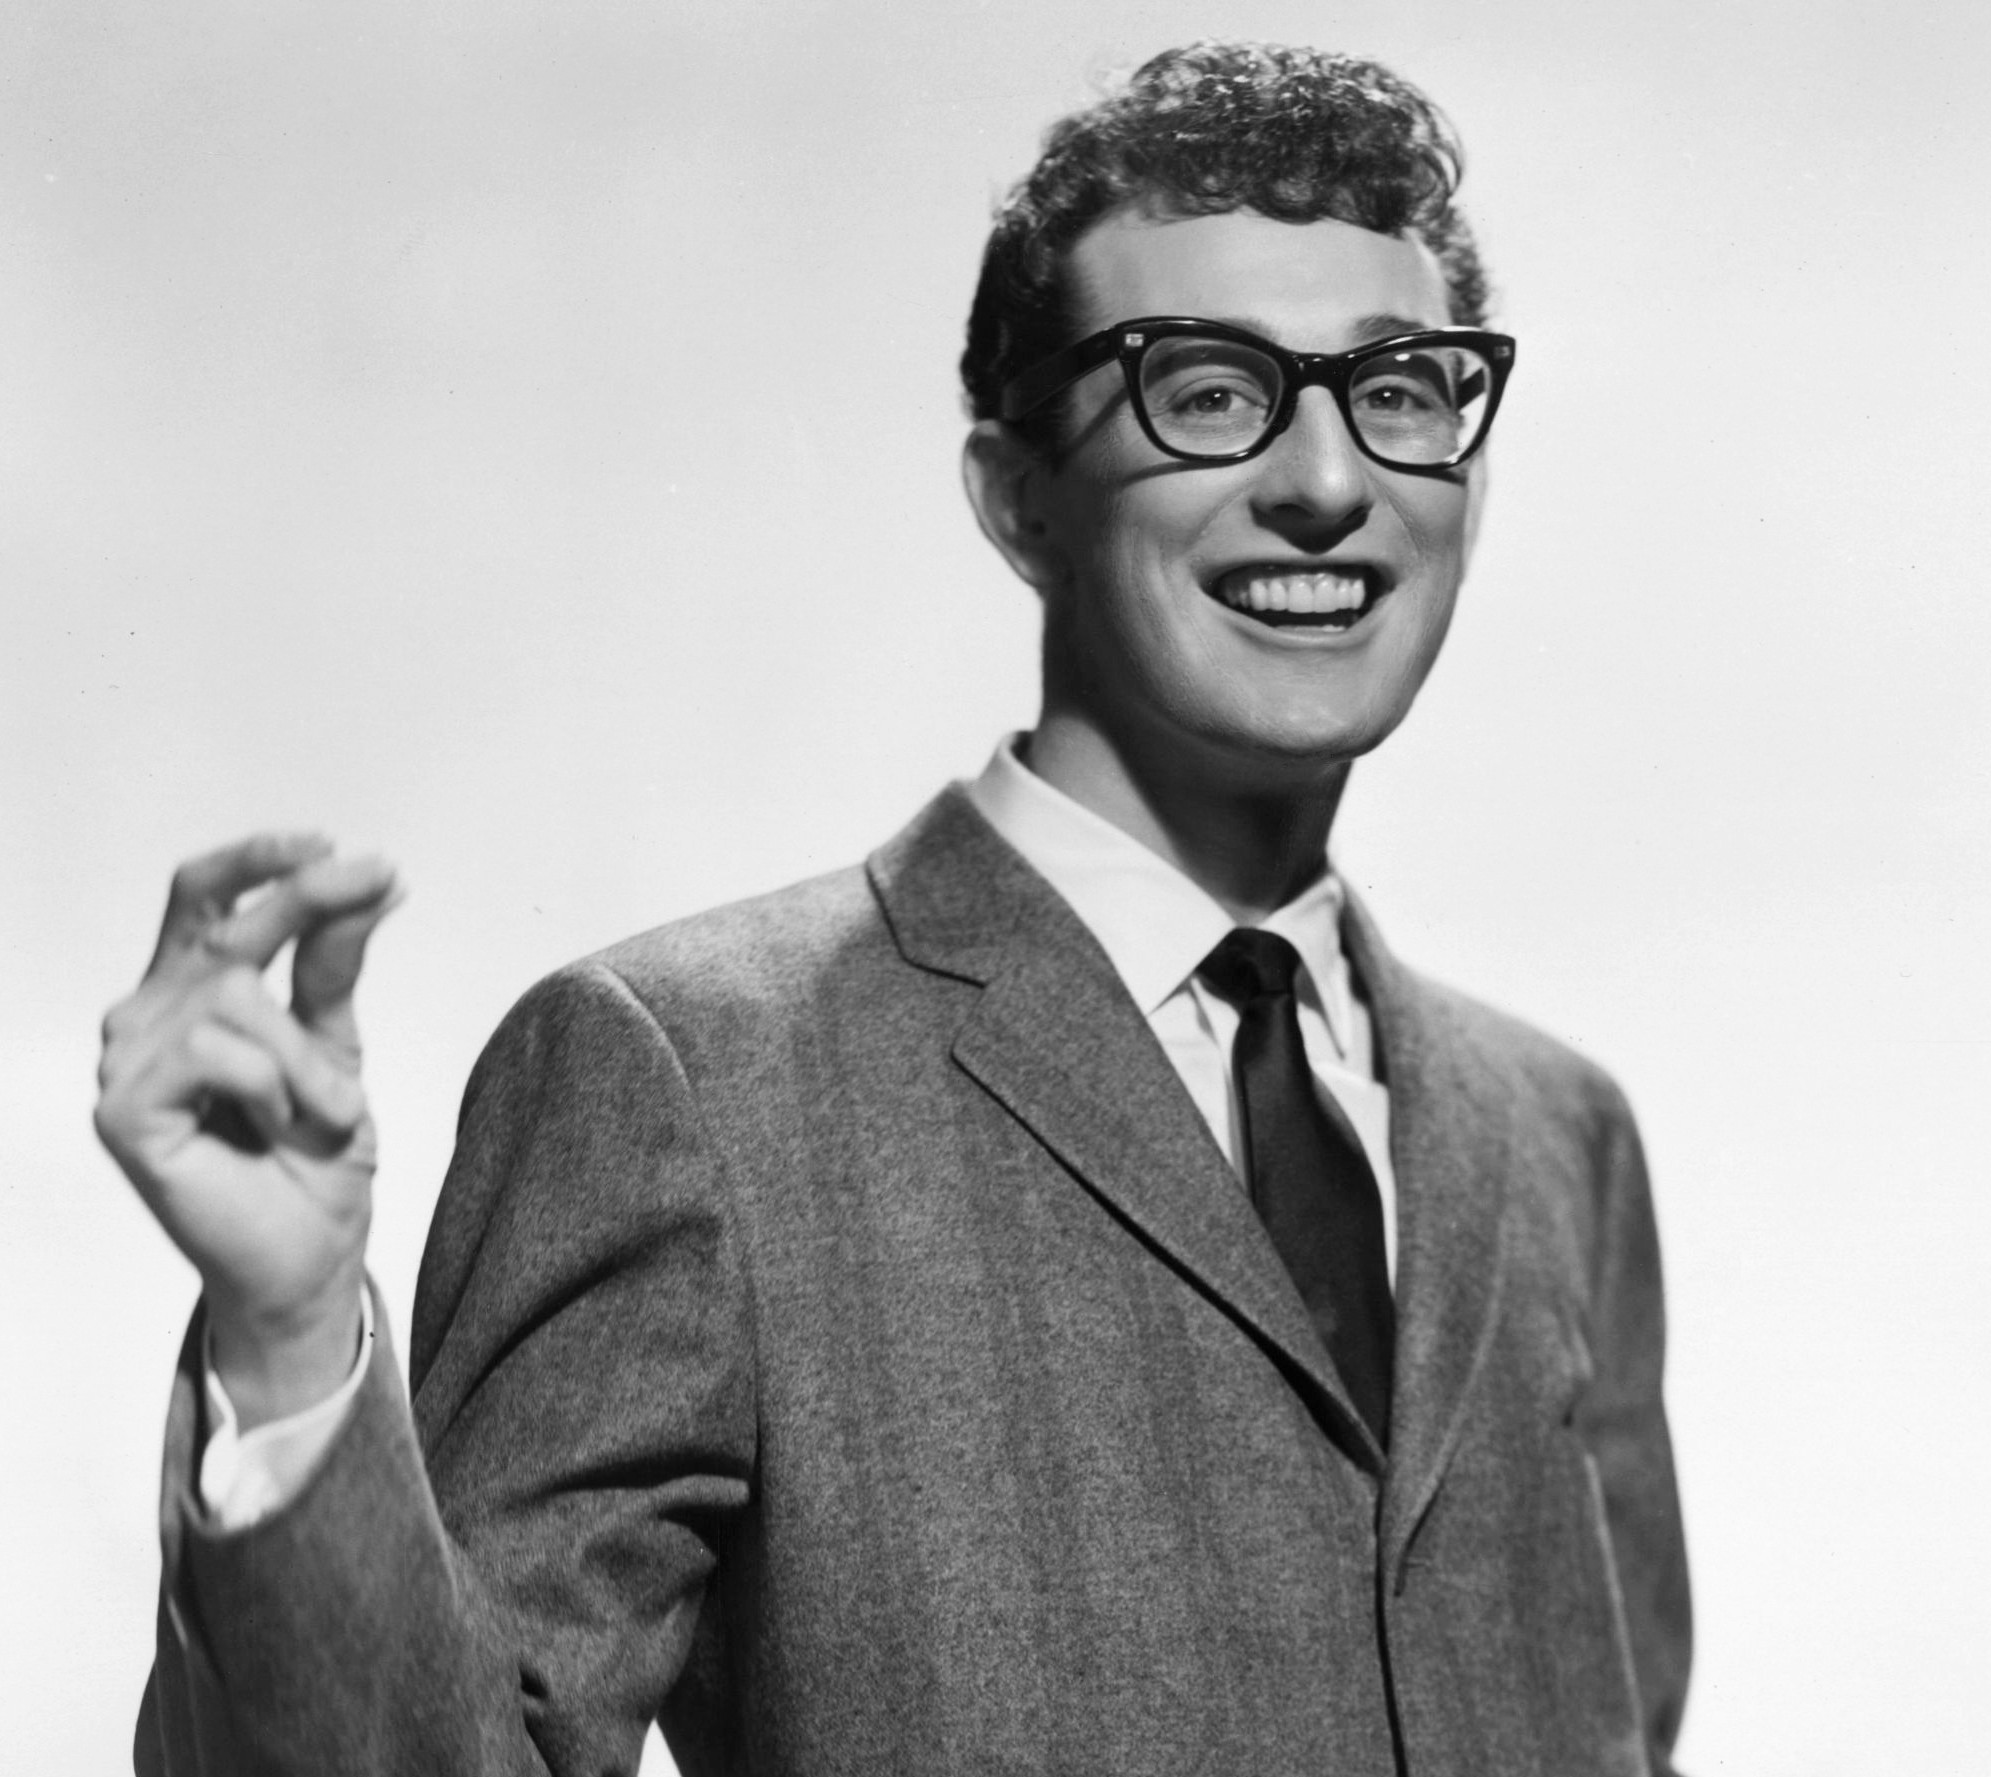 Depiction of Buddy Holly